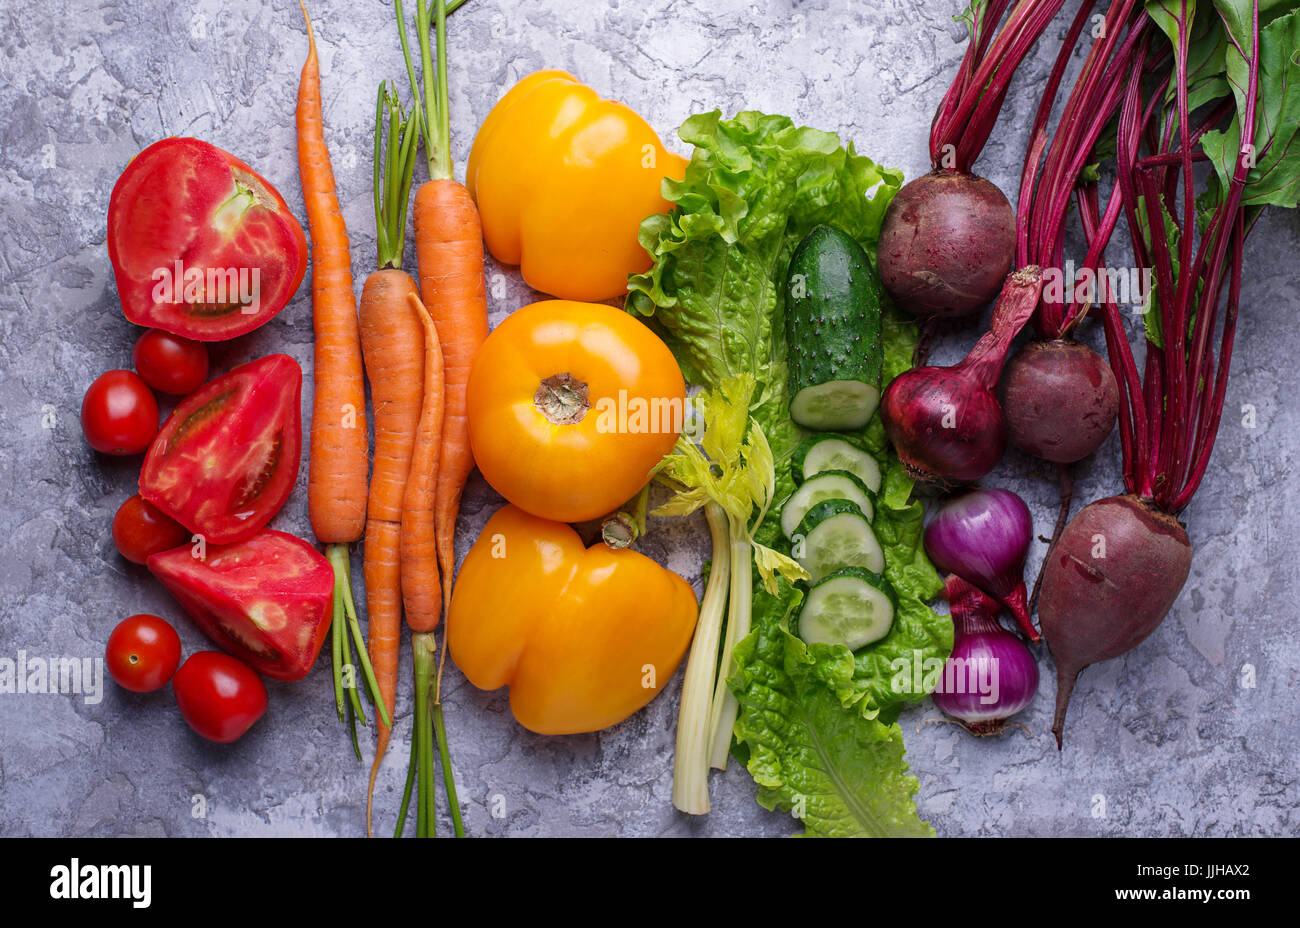 Rainbow colored vegetables. Healthy food concept. Top view - Stock Image